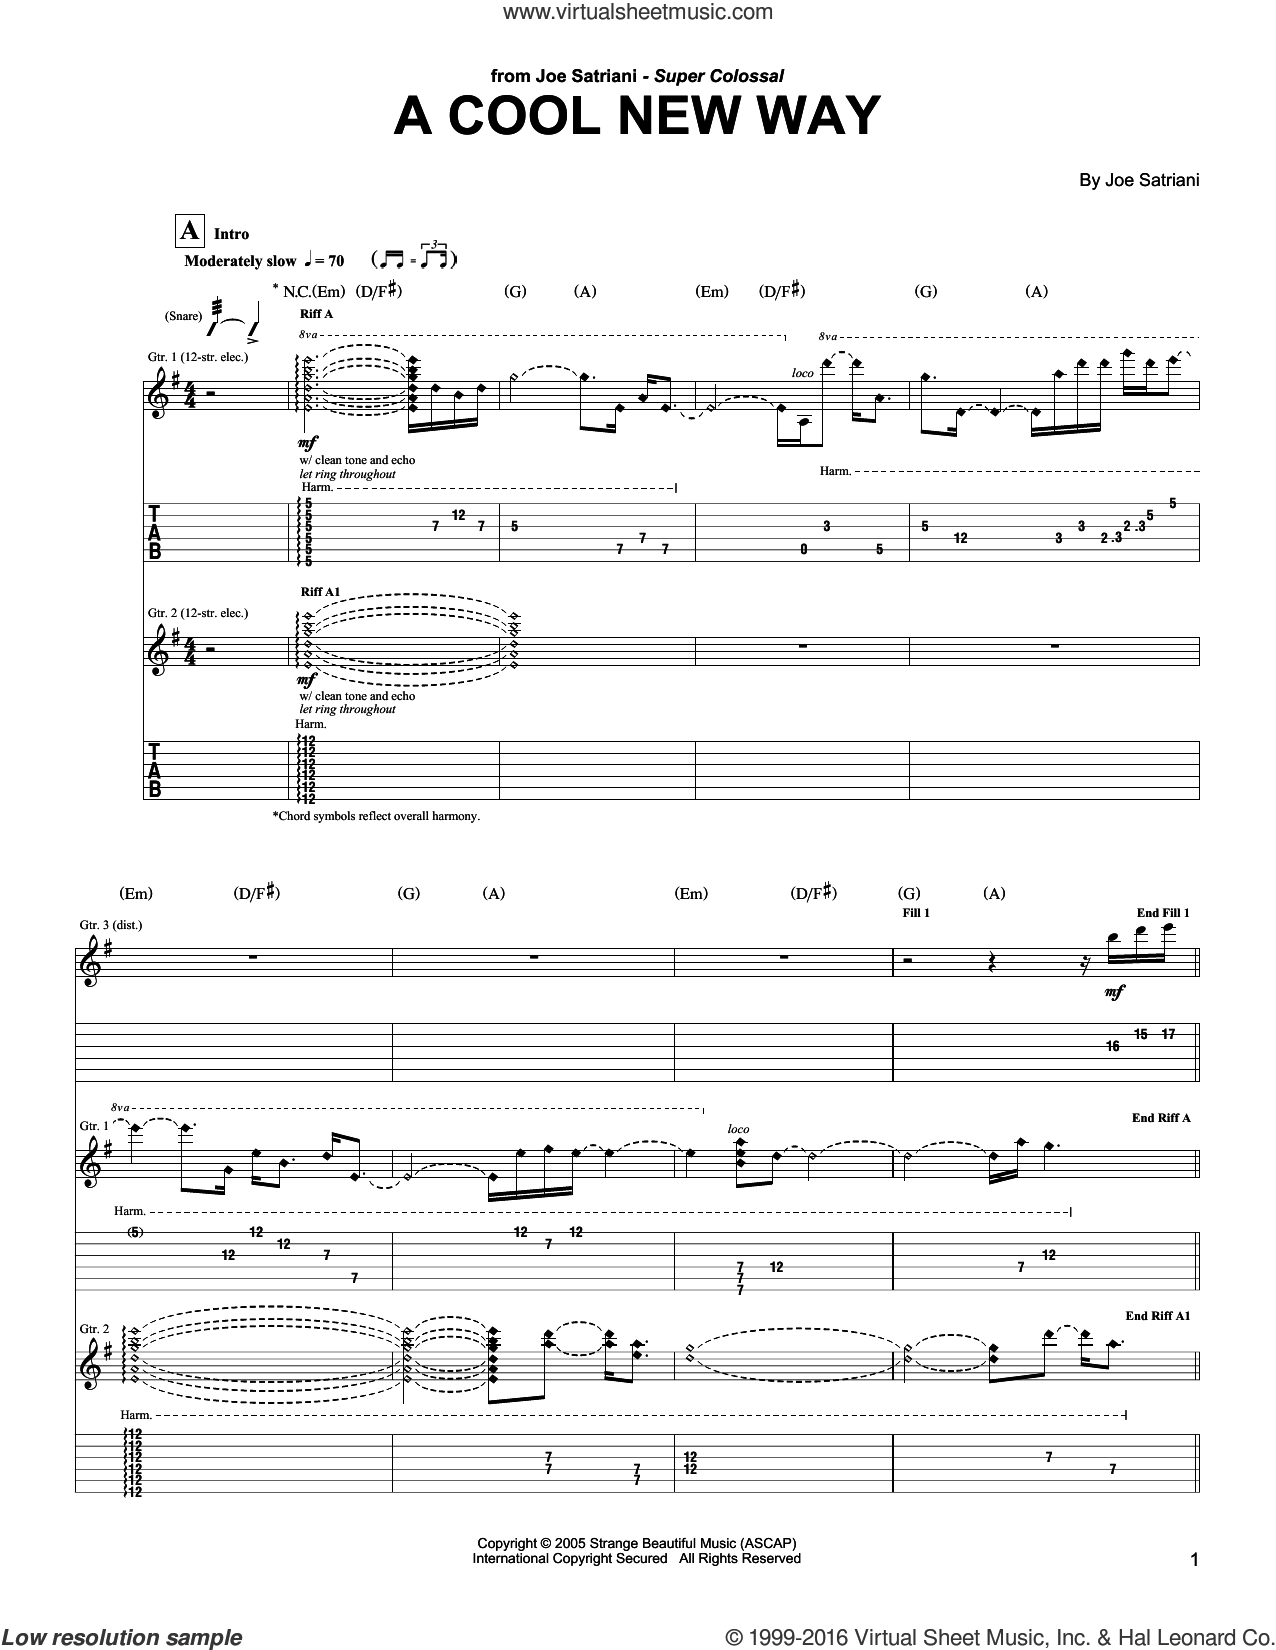 A Cool New Way sheet music for guitar (tablature) by Joe Satriani. Score Image Preview.